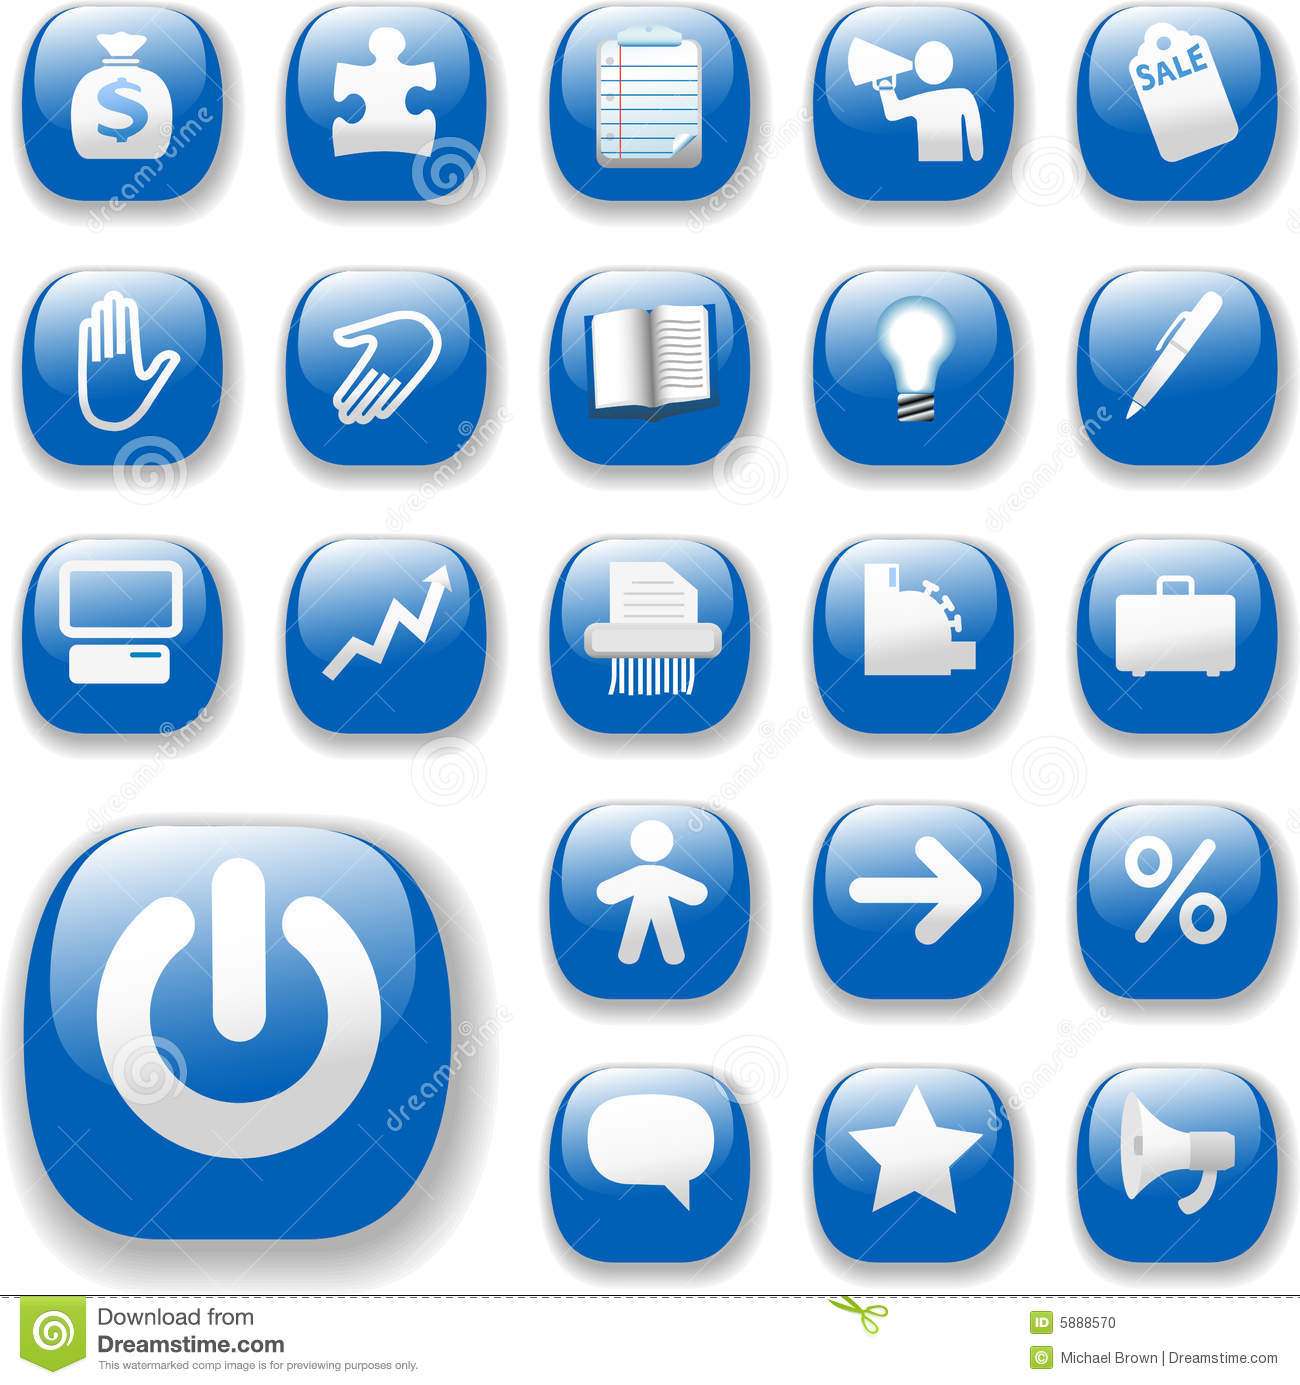 10 Web Navigation Icon Sets Blue Images - Blue Business ...